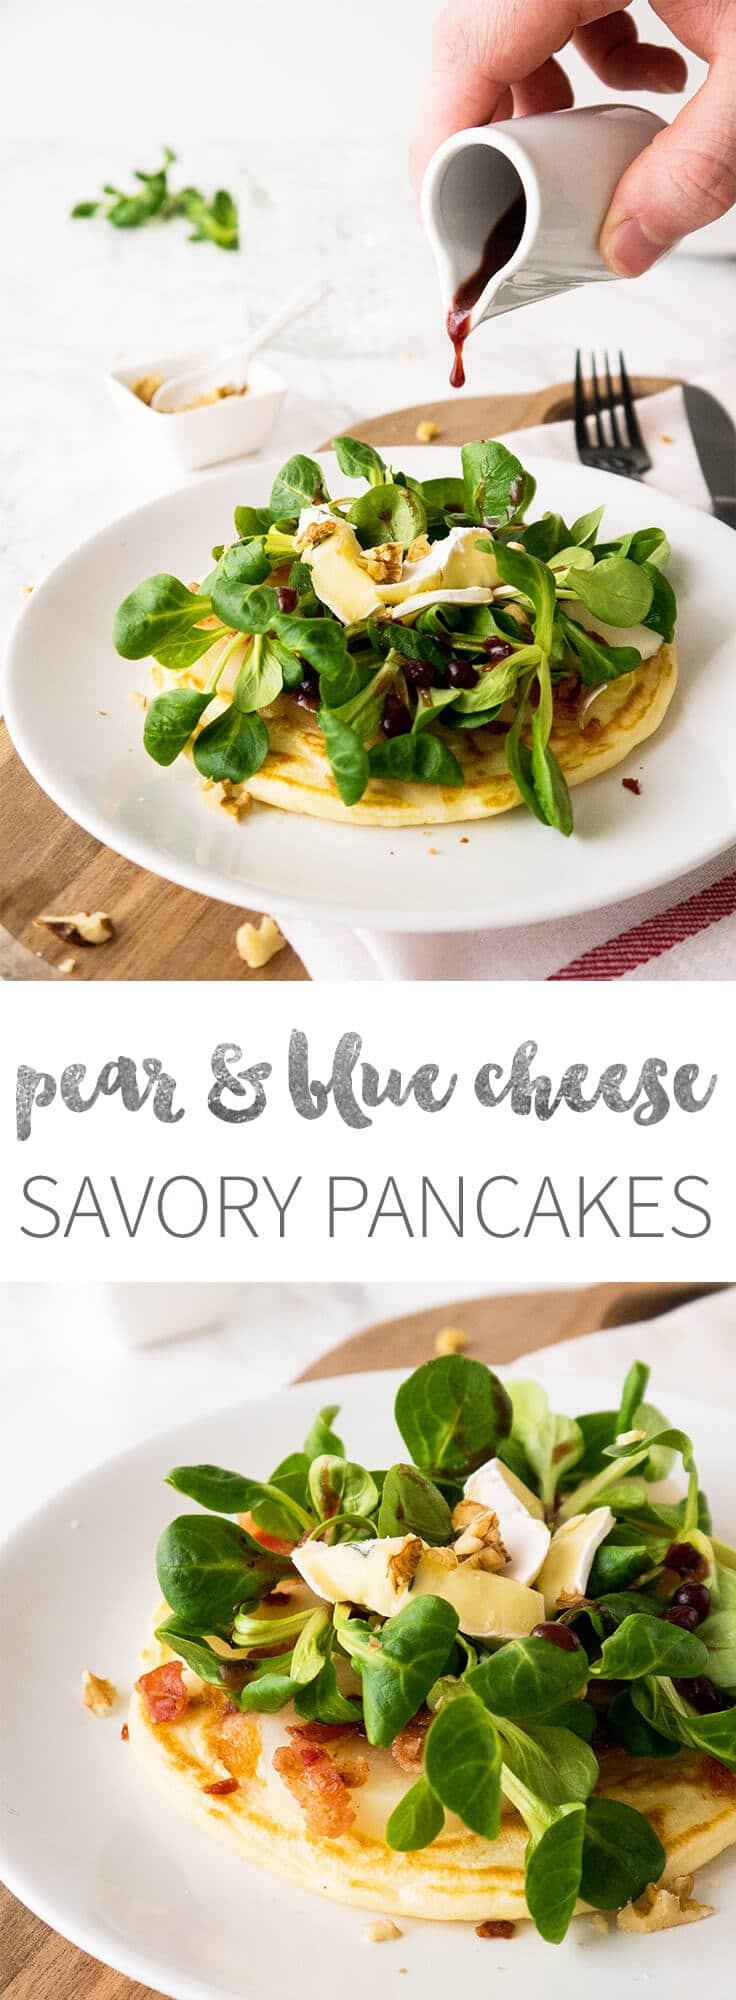 Savory Pancakes with pear and blue cheese are perfect for brunch!